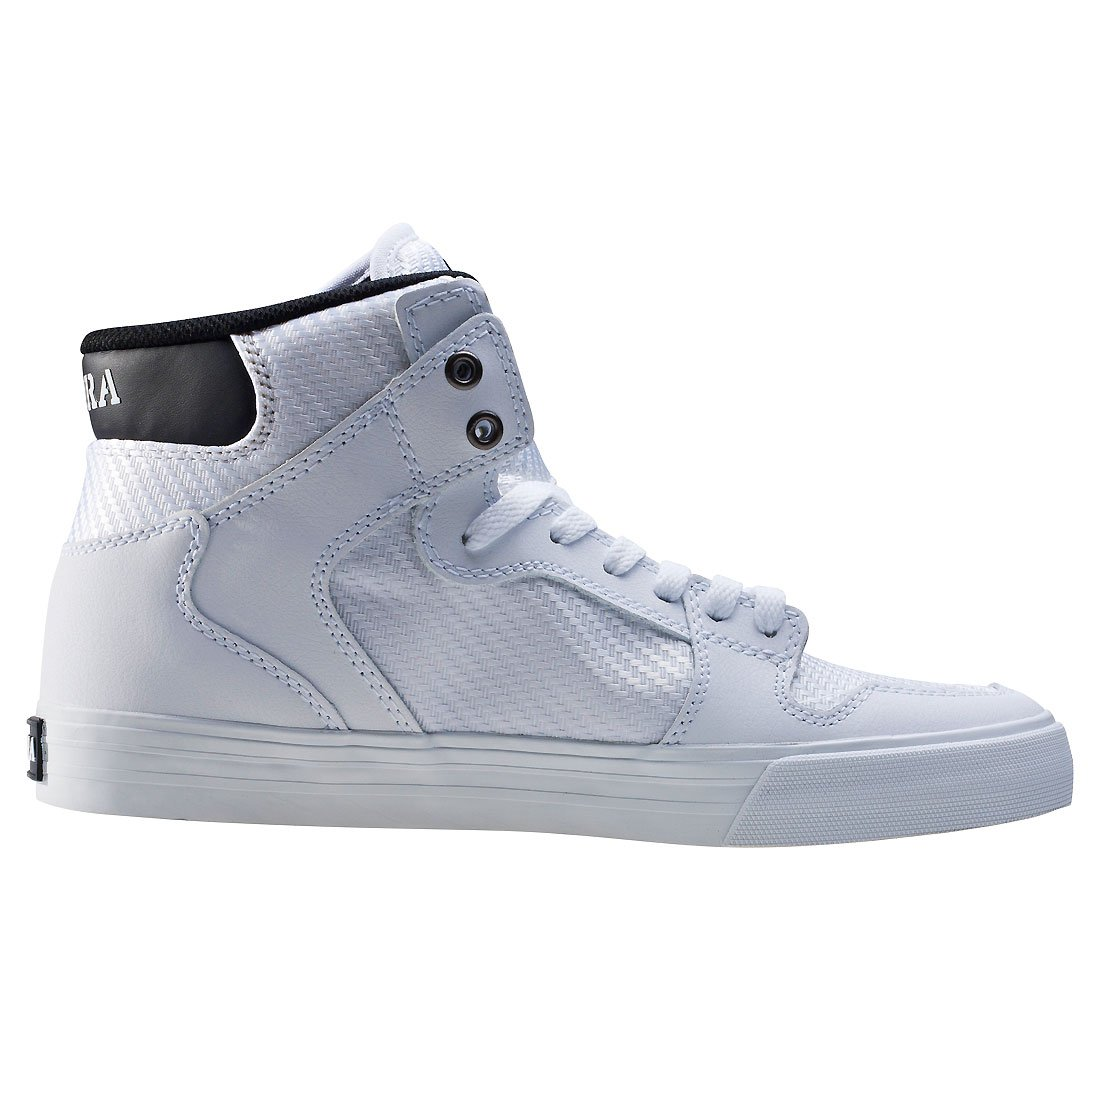 Supra Vaider LC Sneaker B01IFLUU8C Medium / / 10 C/D US Women / / 8.5 D(M) US Men|White/White 859032